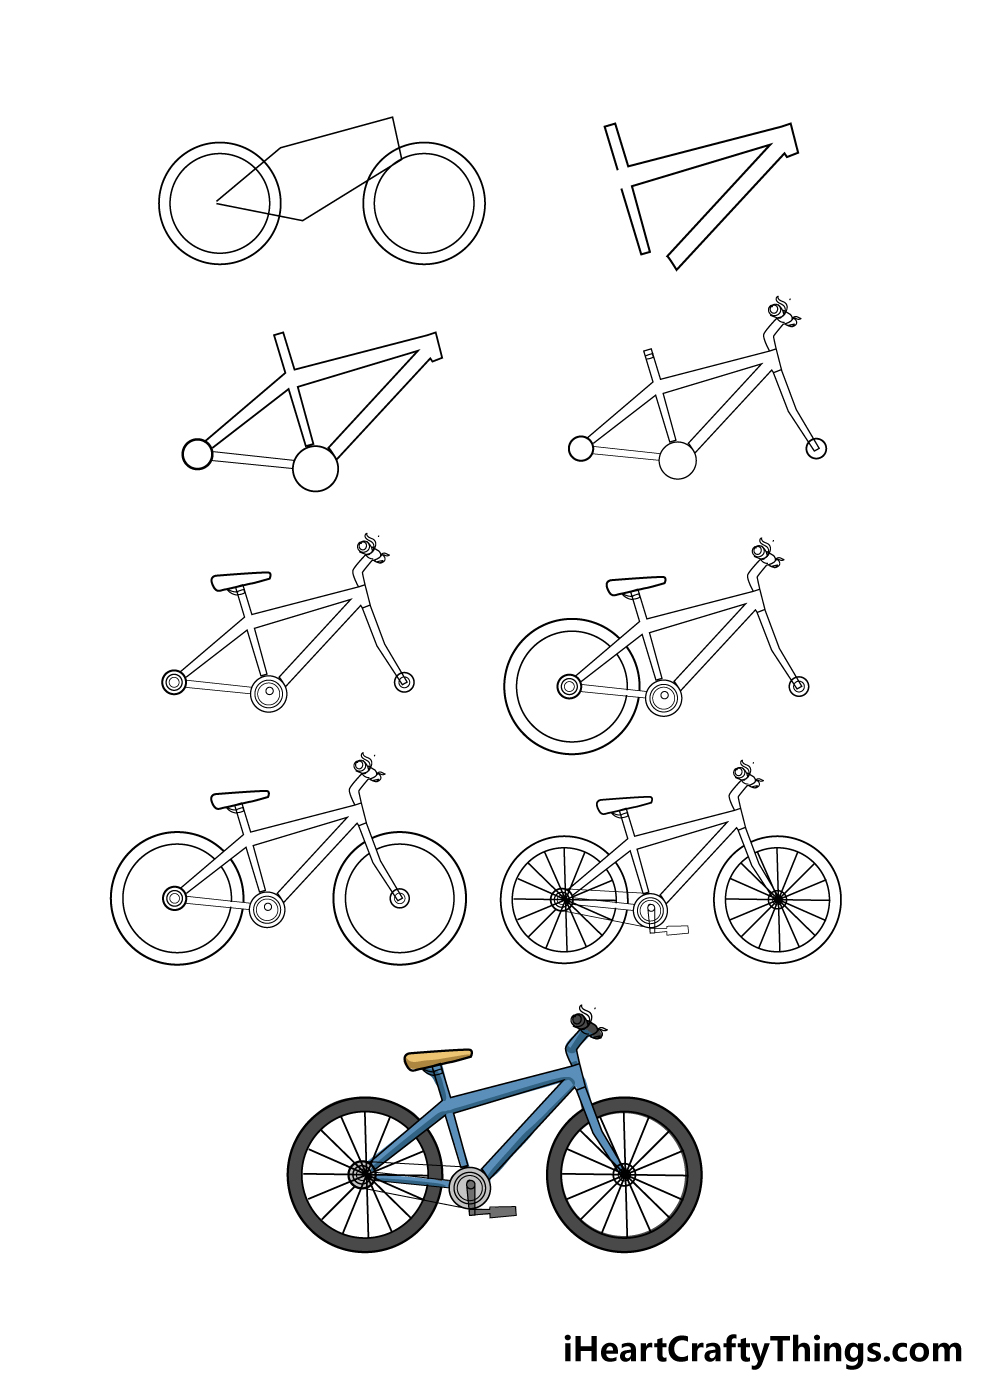 How to draw bike in 9 steps